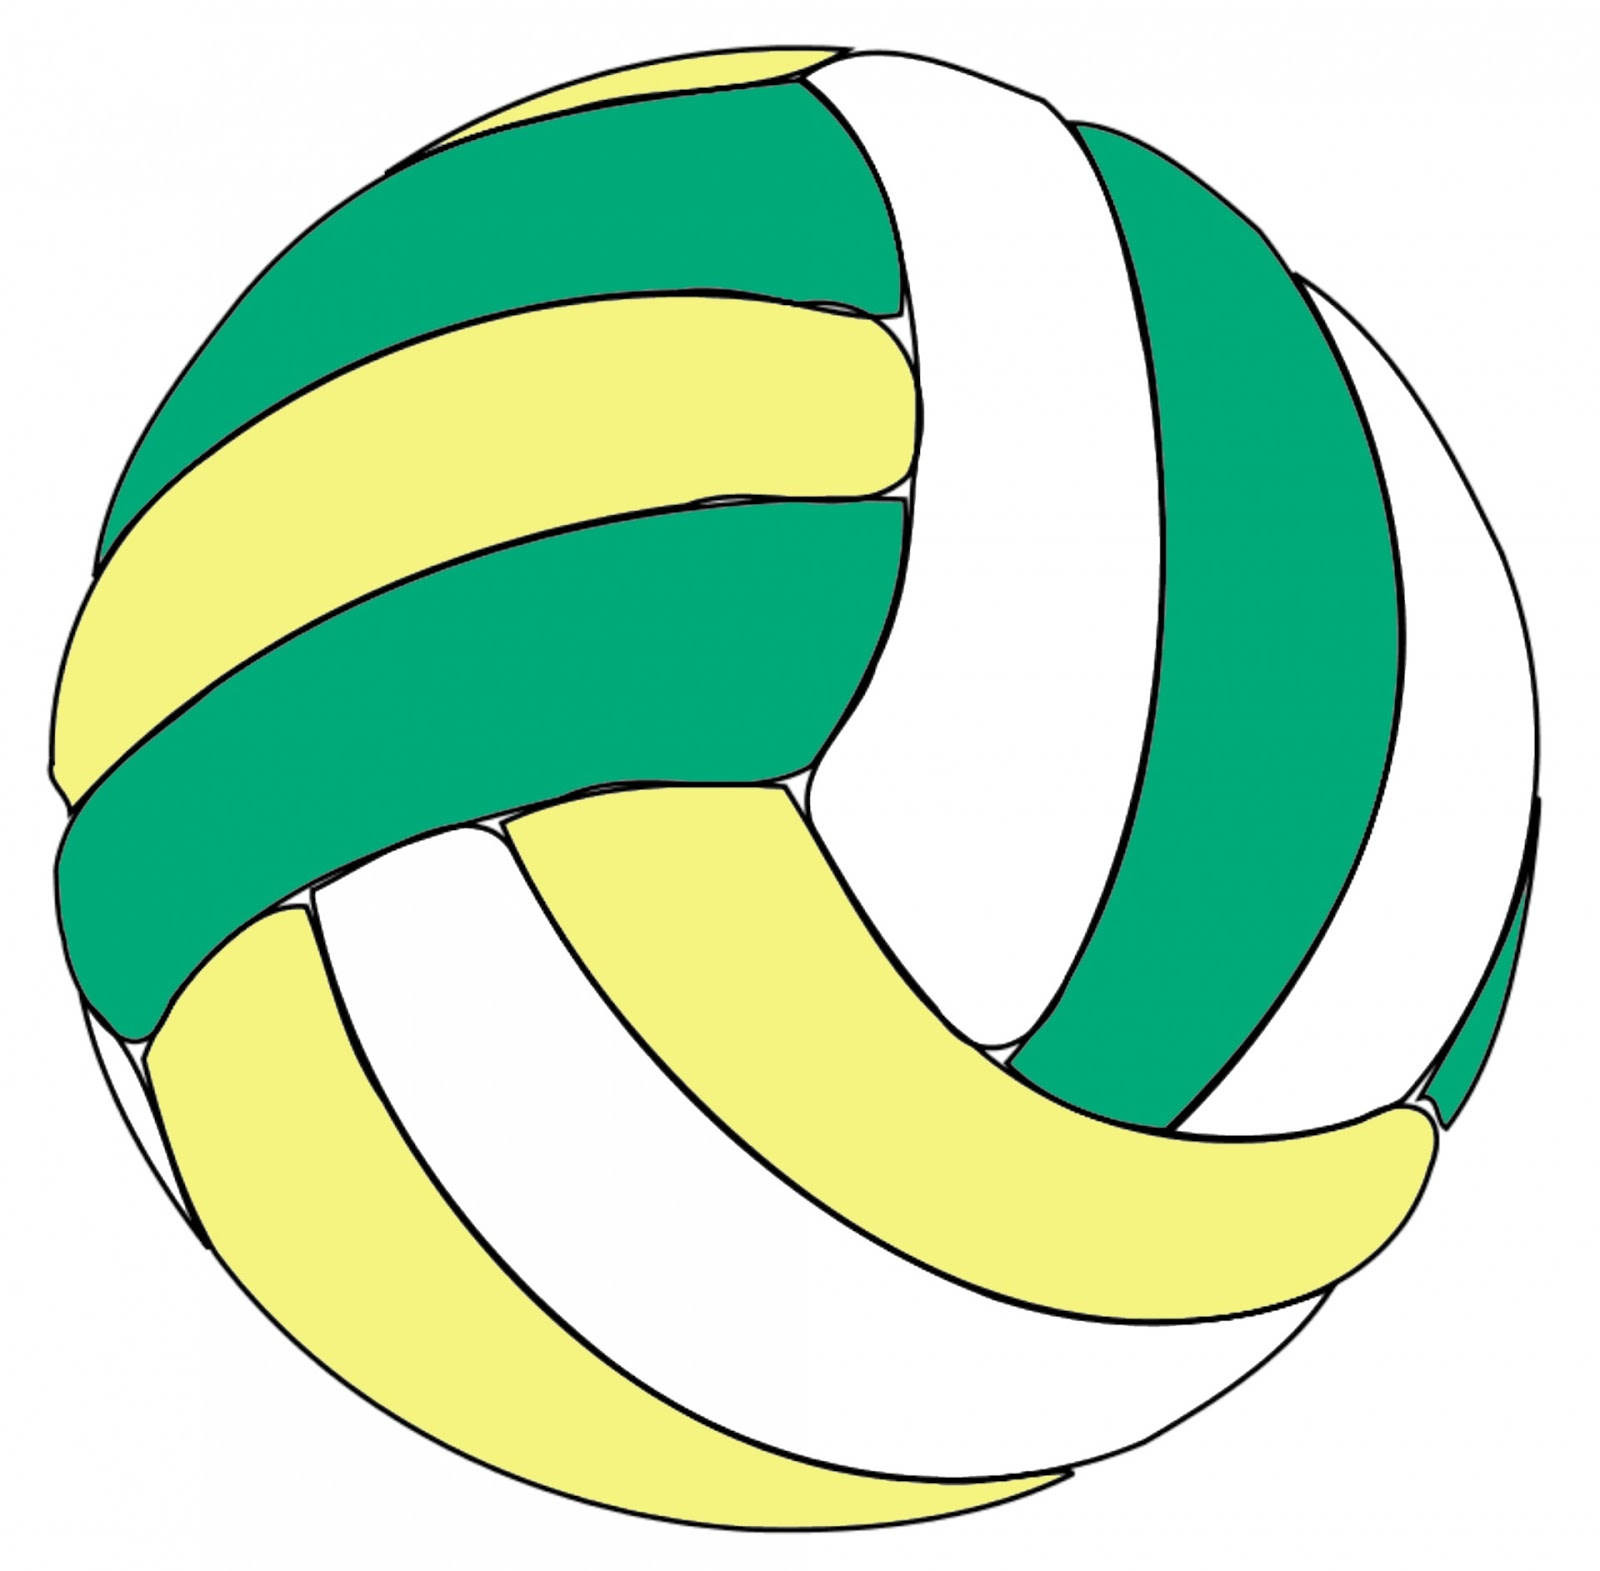 Volleyball Images - Public Domain Pictures - Page 1